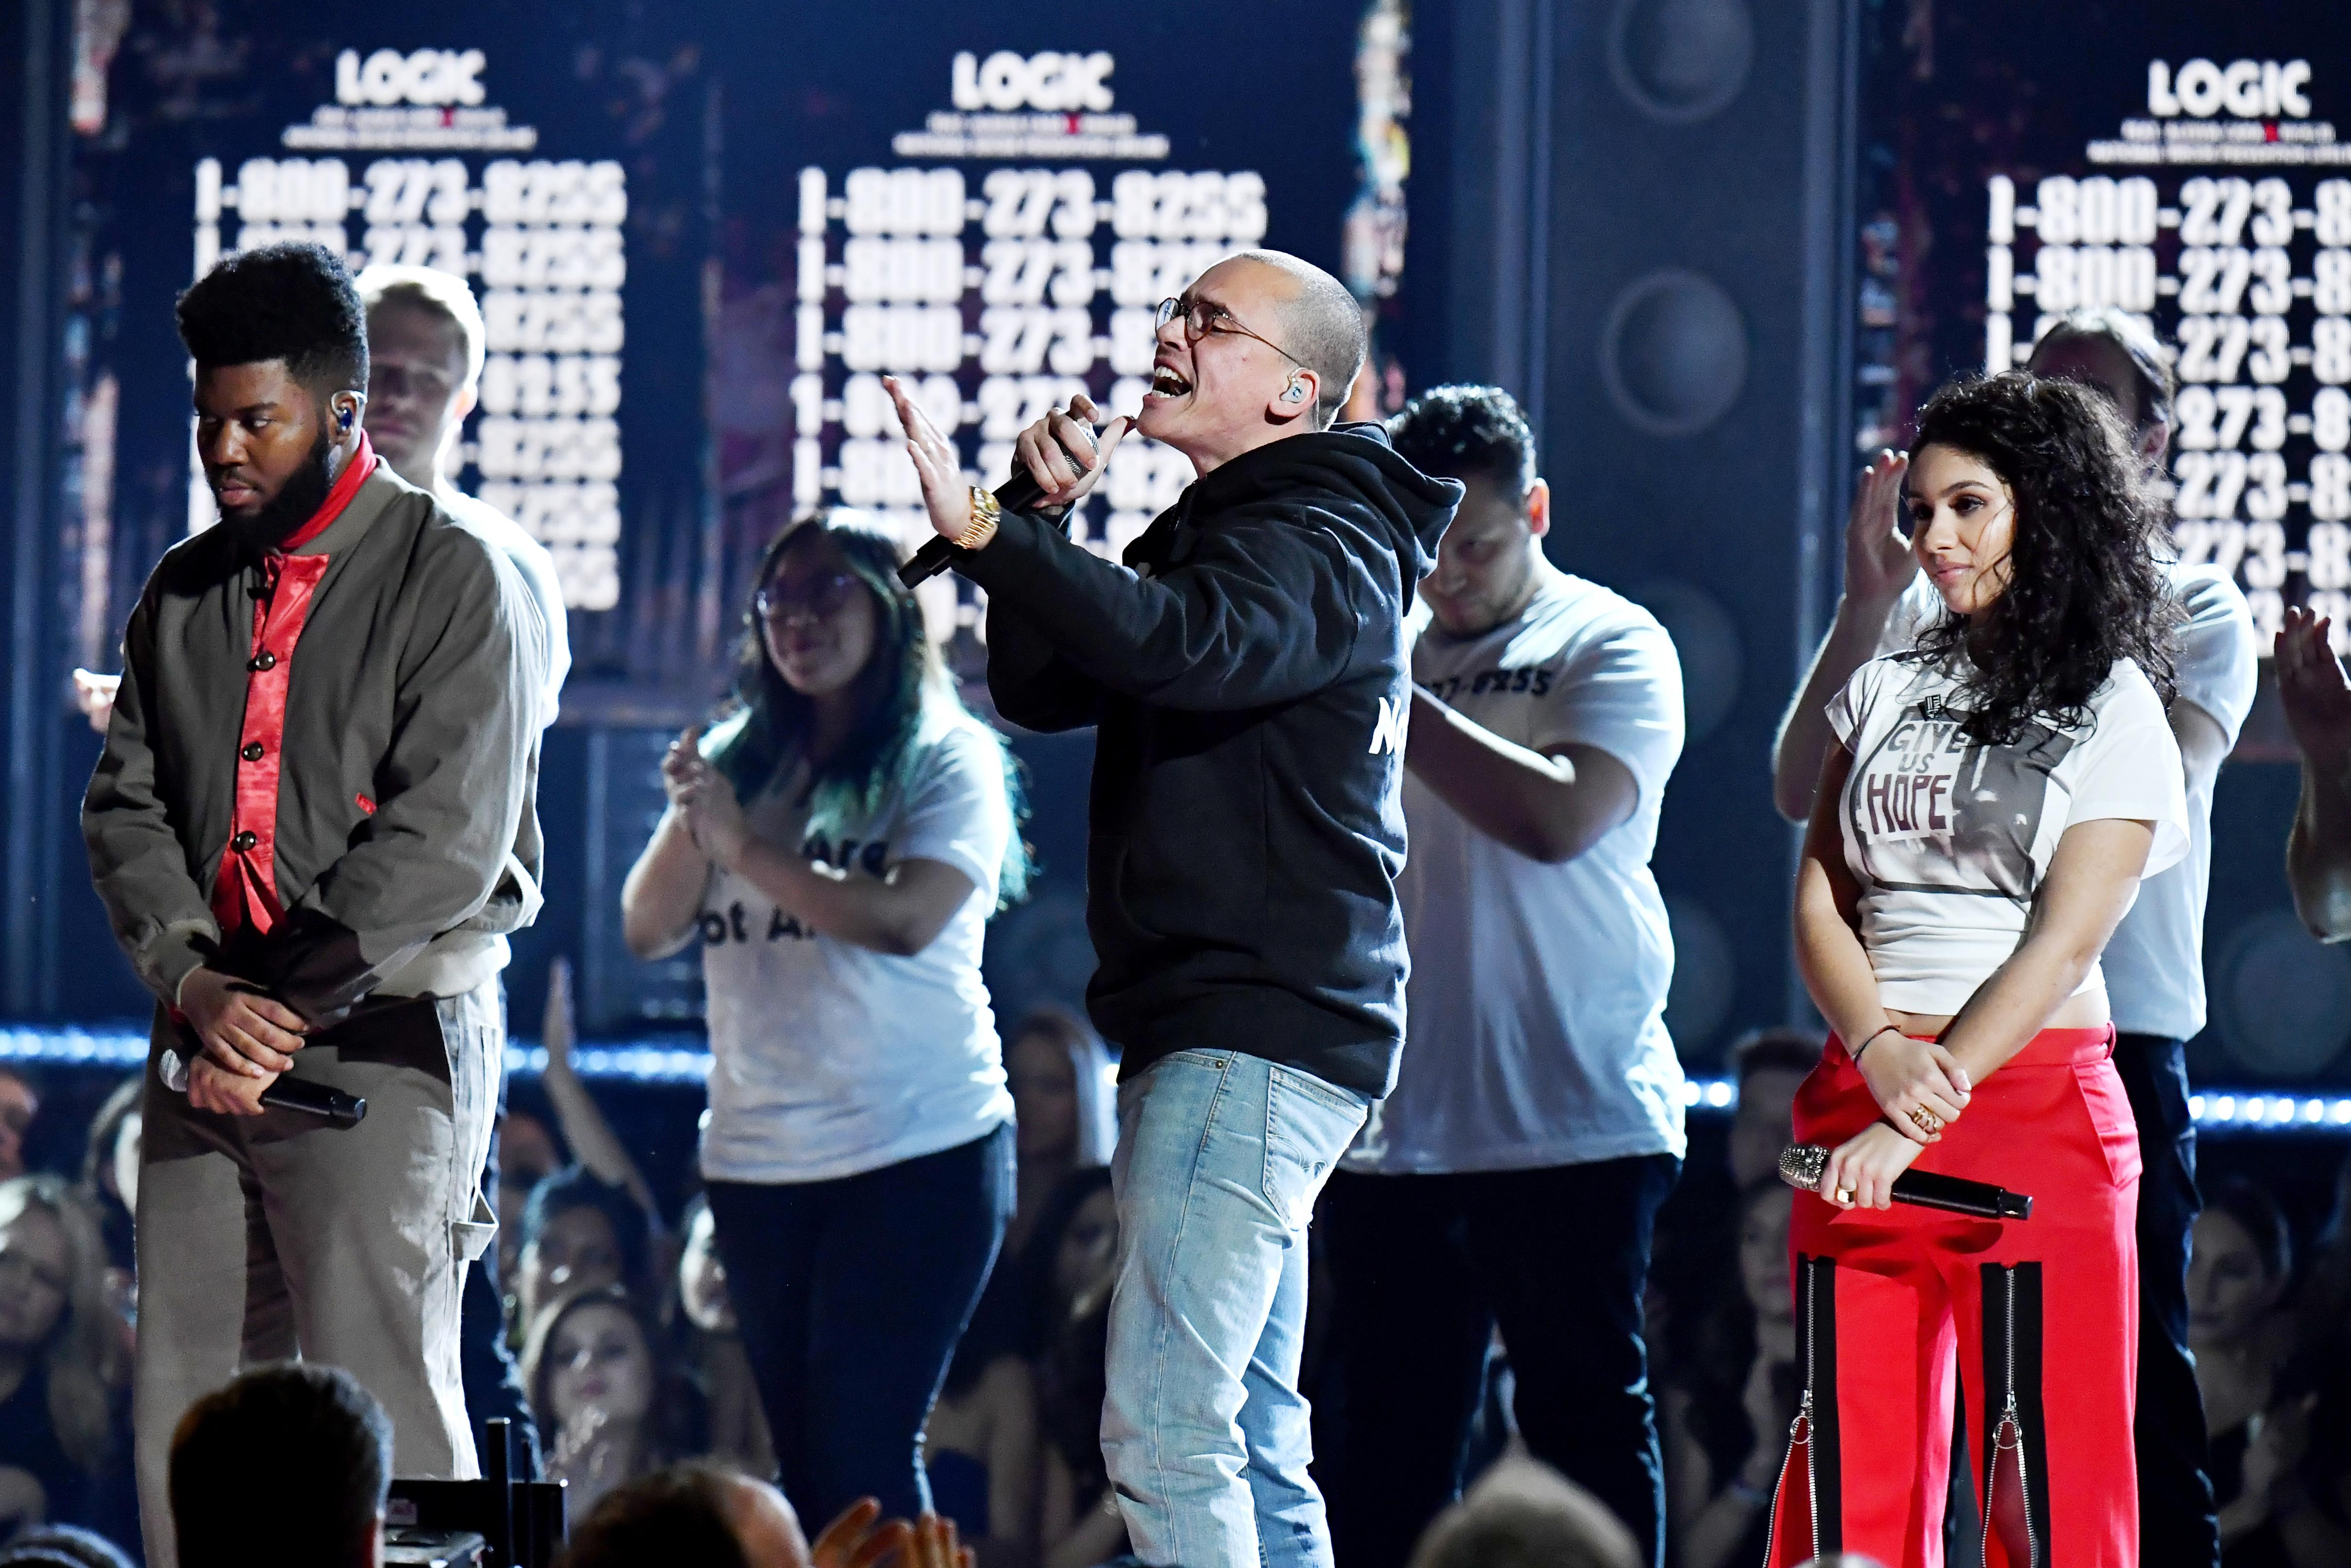 Logic reveals he's biracial and slams Trump's hateful words at Grammys